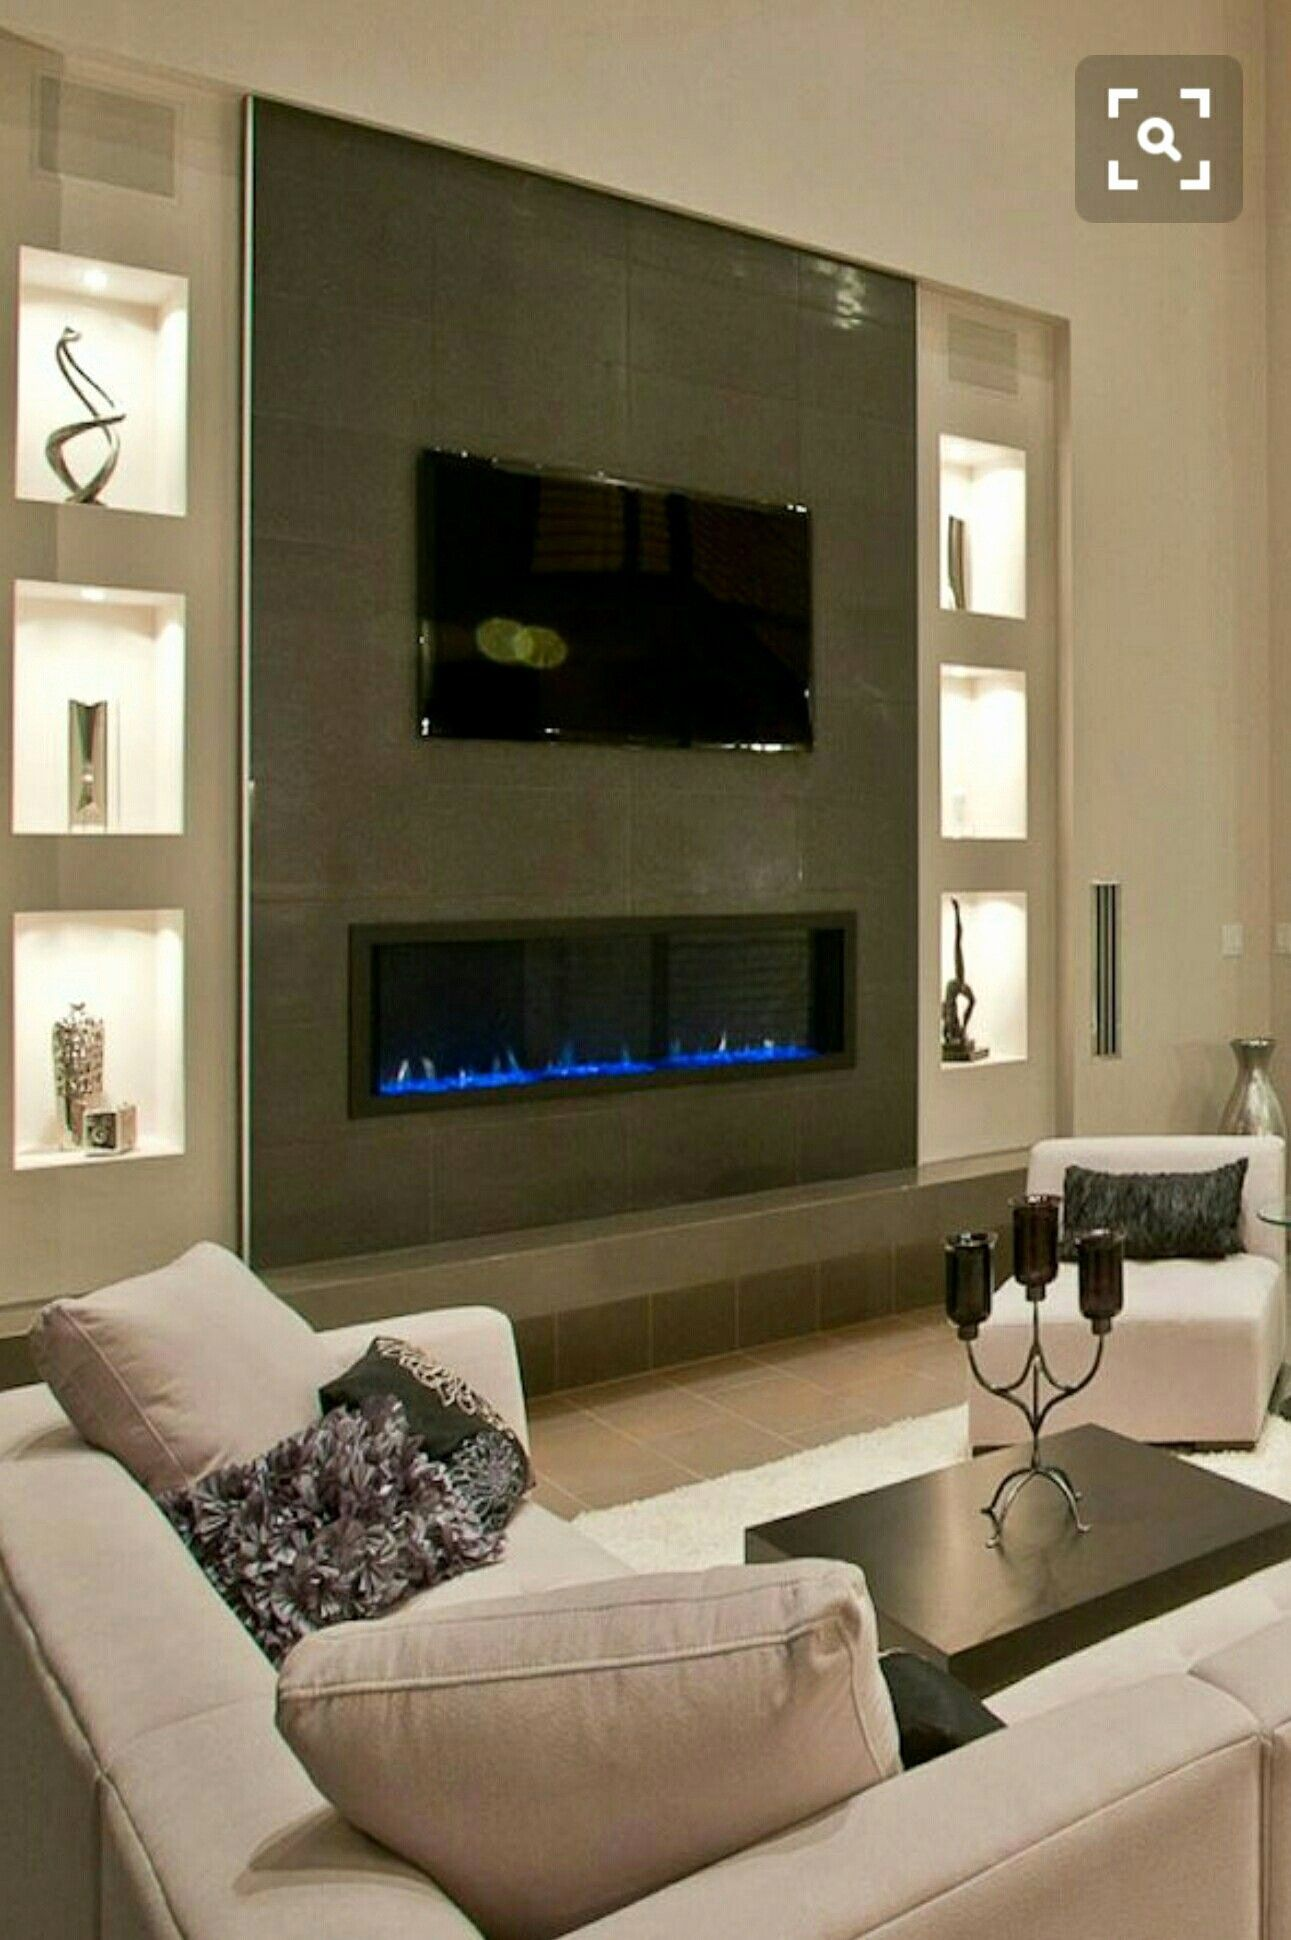 Living Room With Fireplace And Tv On Different Walls Elegant Pin Von Katja Soller Auf Tv Wand Idee Fireplace Design Wall Units With Fireplace Fireplace Tv Wall